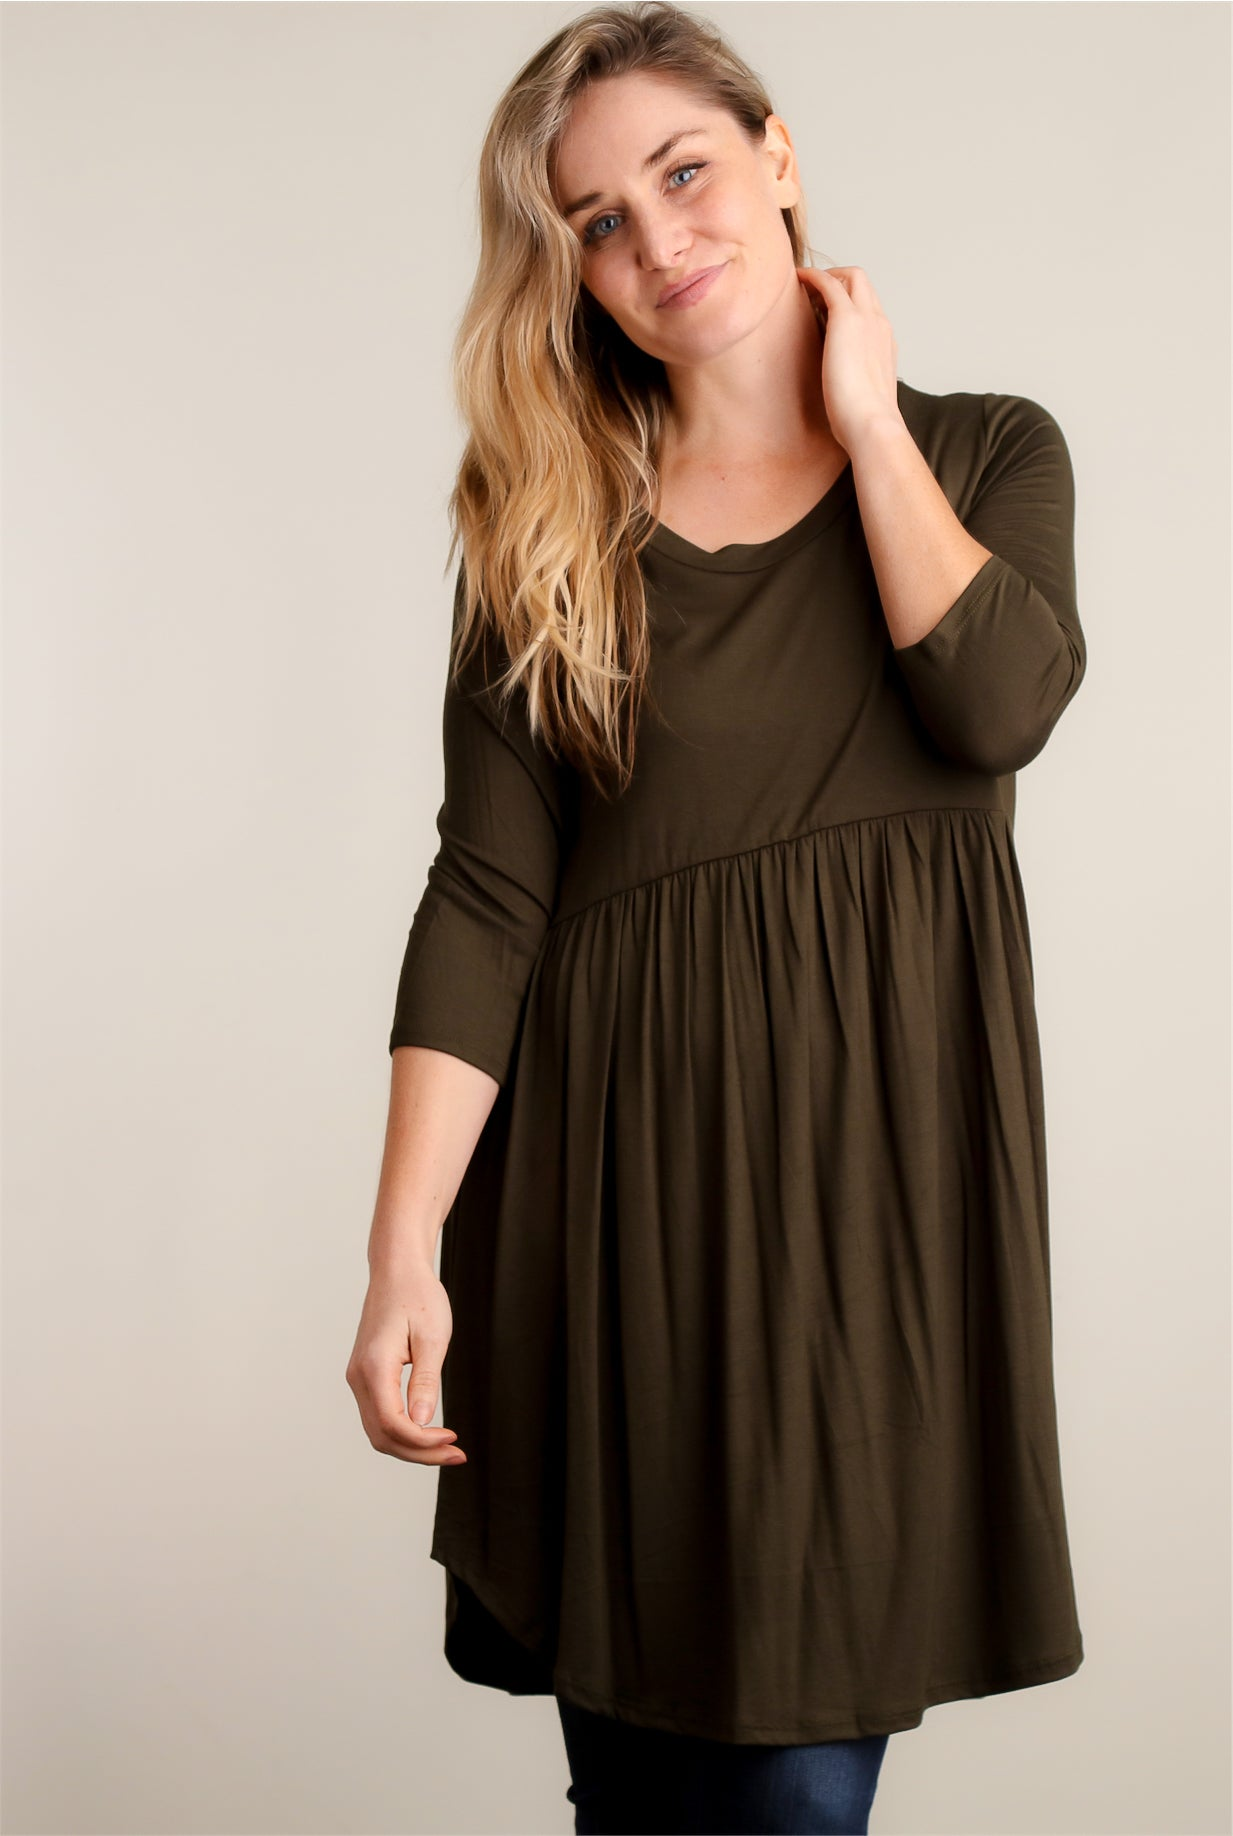 Olive Baby Doll Dress